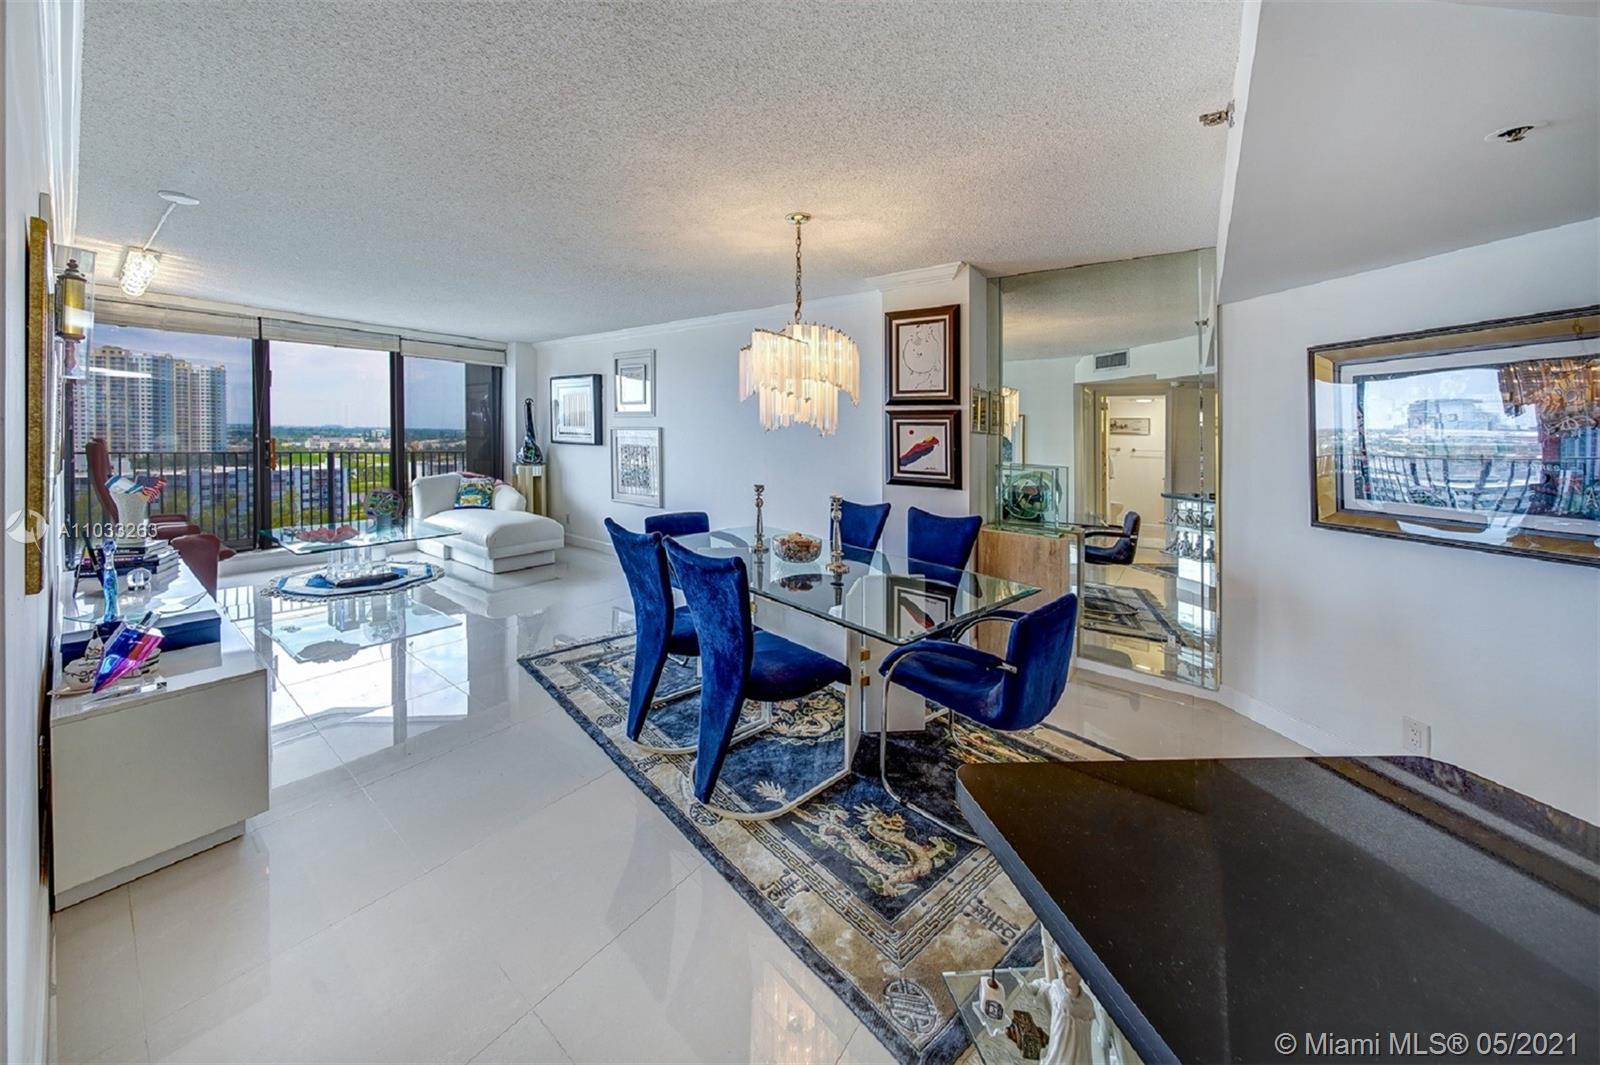 Bright & airy, beautifully remodeled 2 BD/2 BA unit located on the 14th floor w/ amazing water & cit